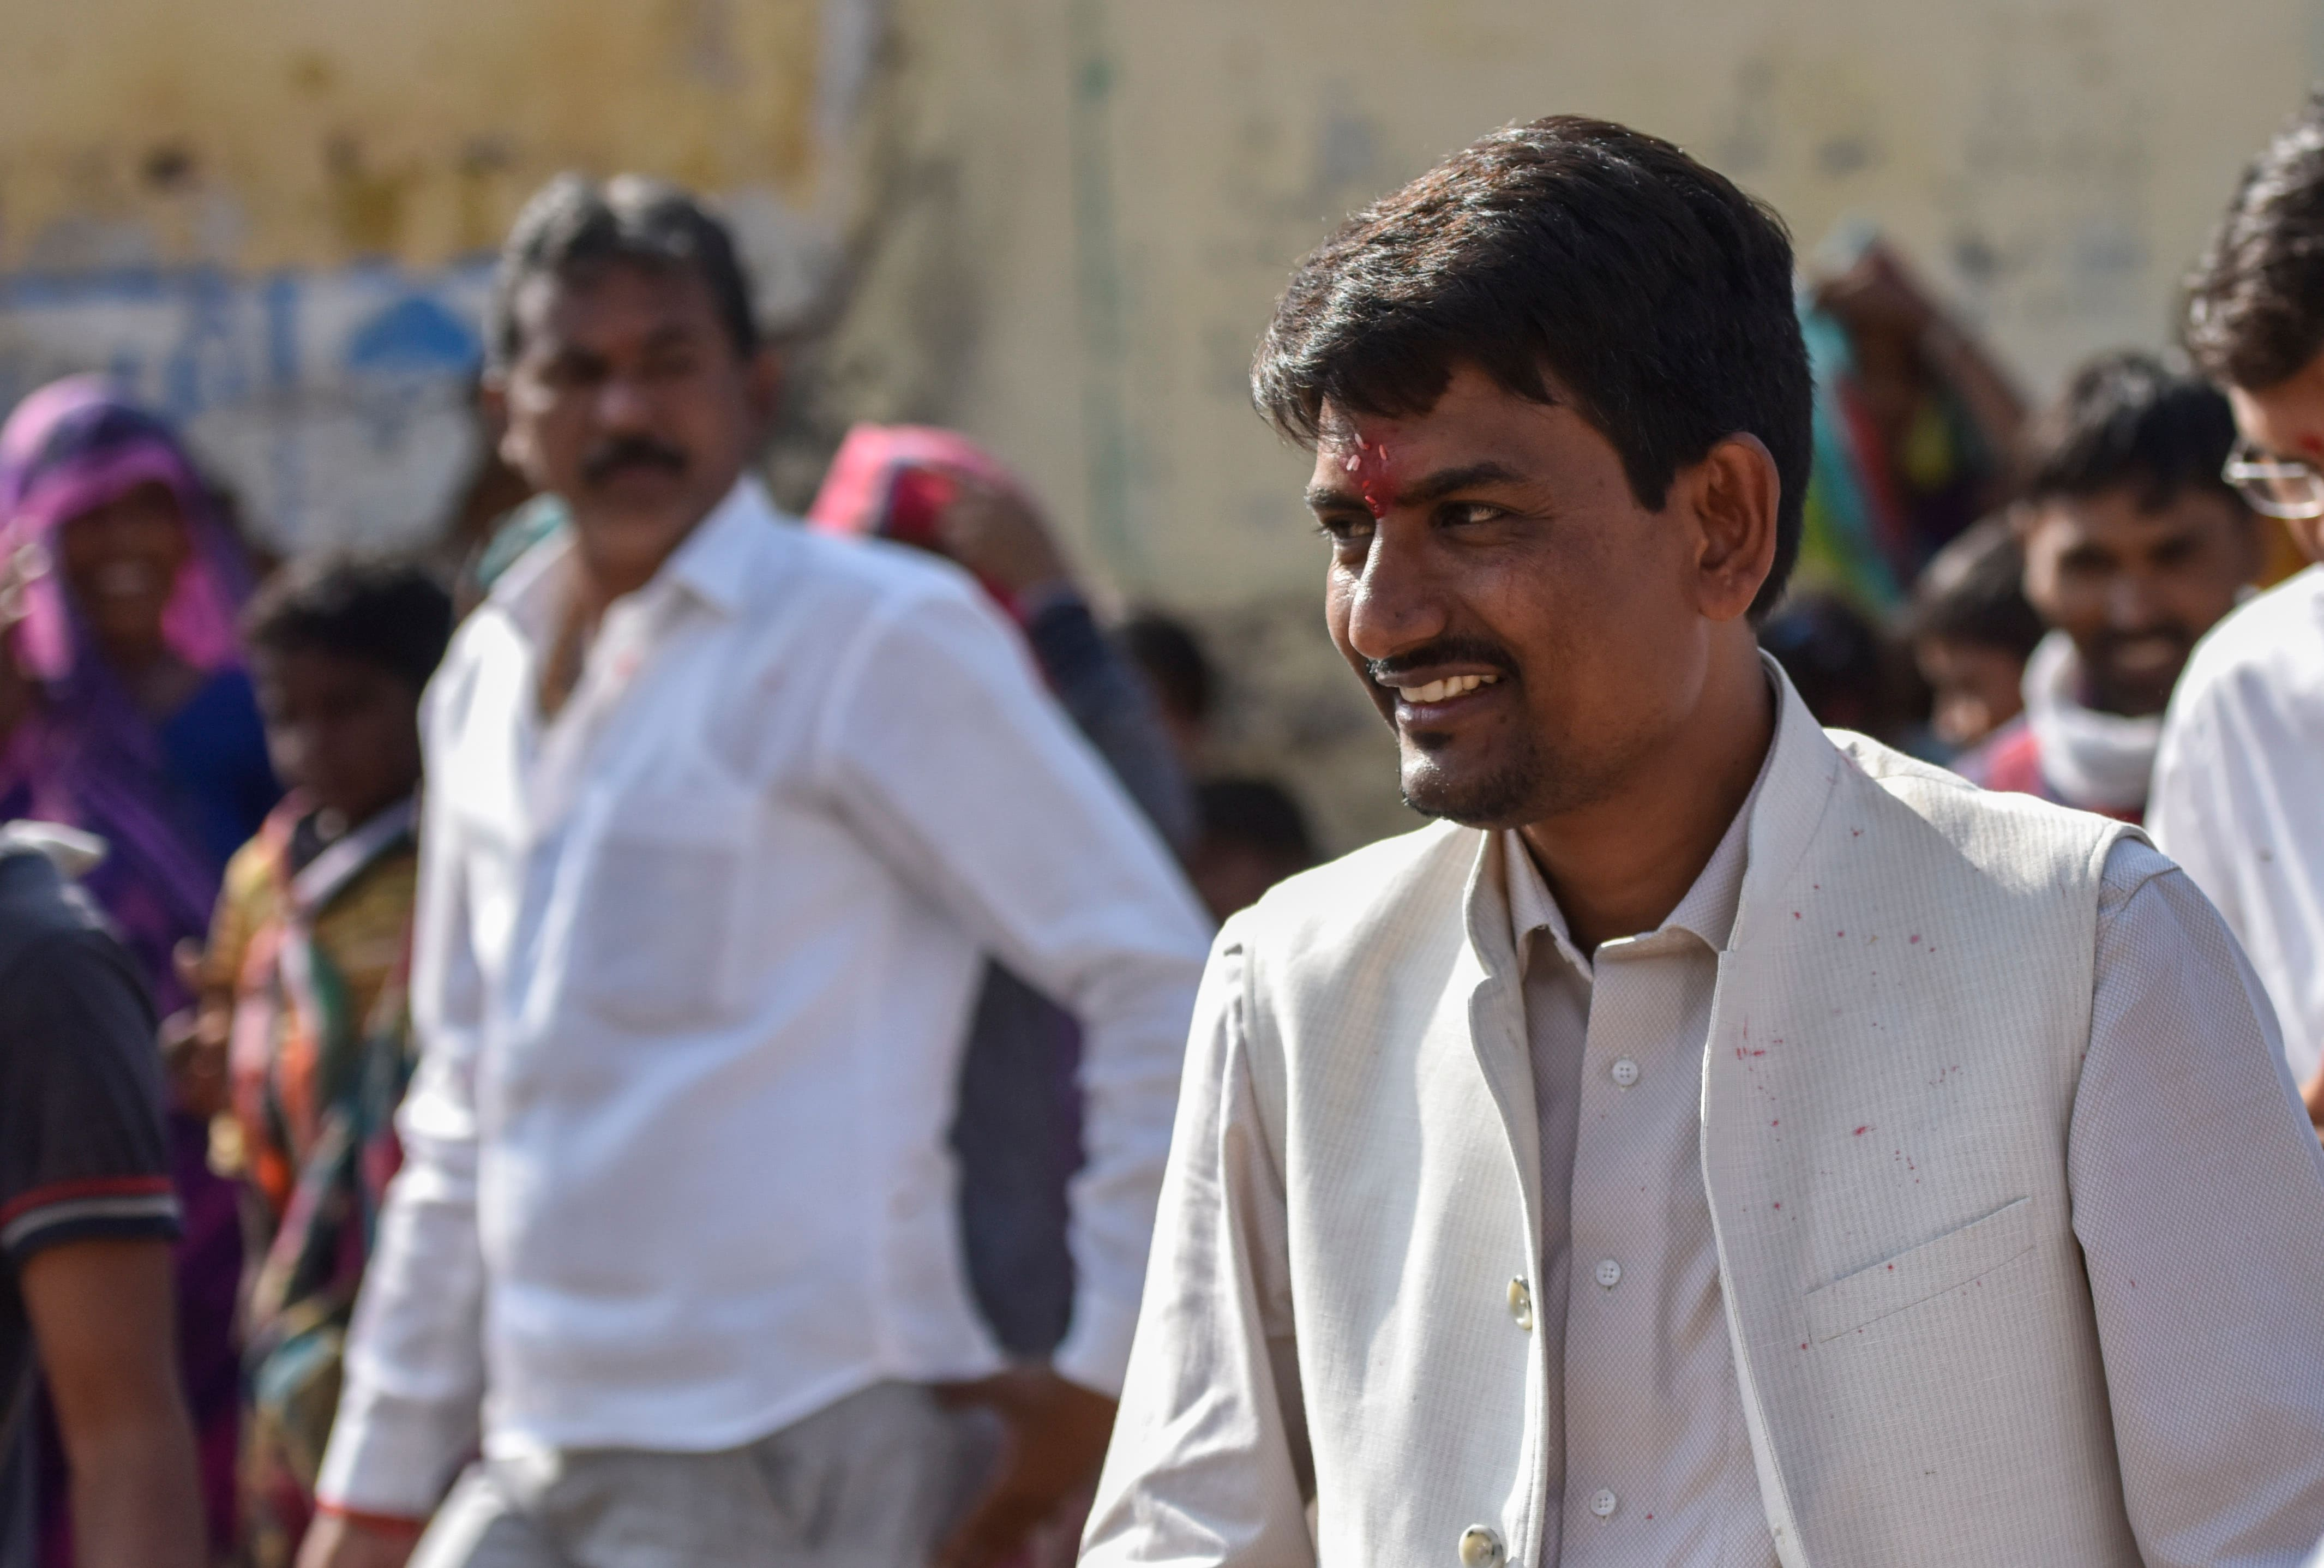 More than 15 MLA of Gujarat will leave Congress soon, claims Alpesh Thakor after meeting with Nitin Patel